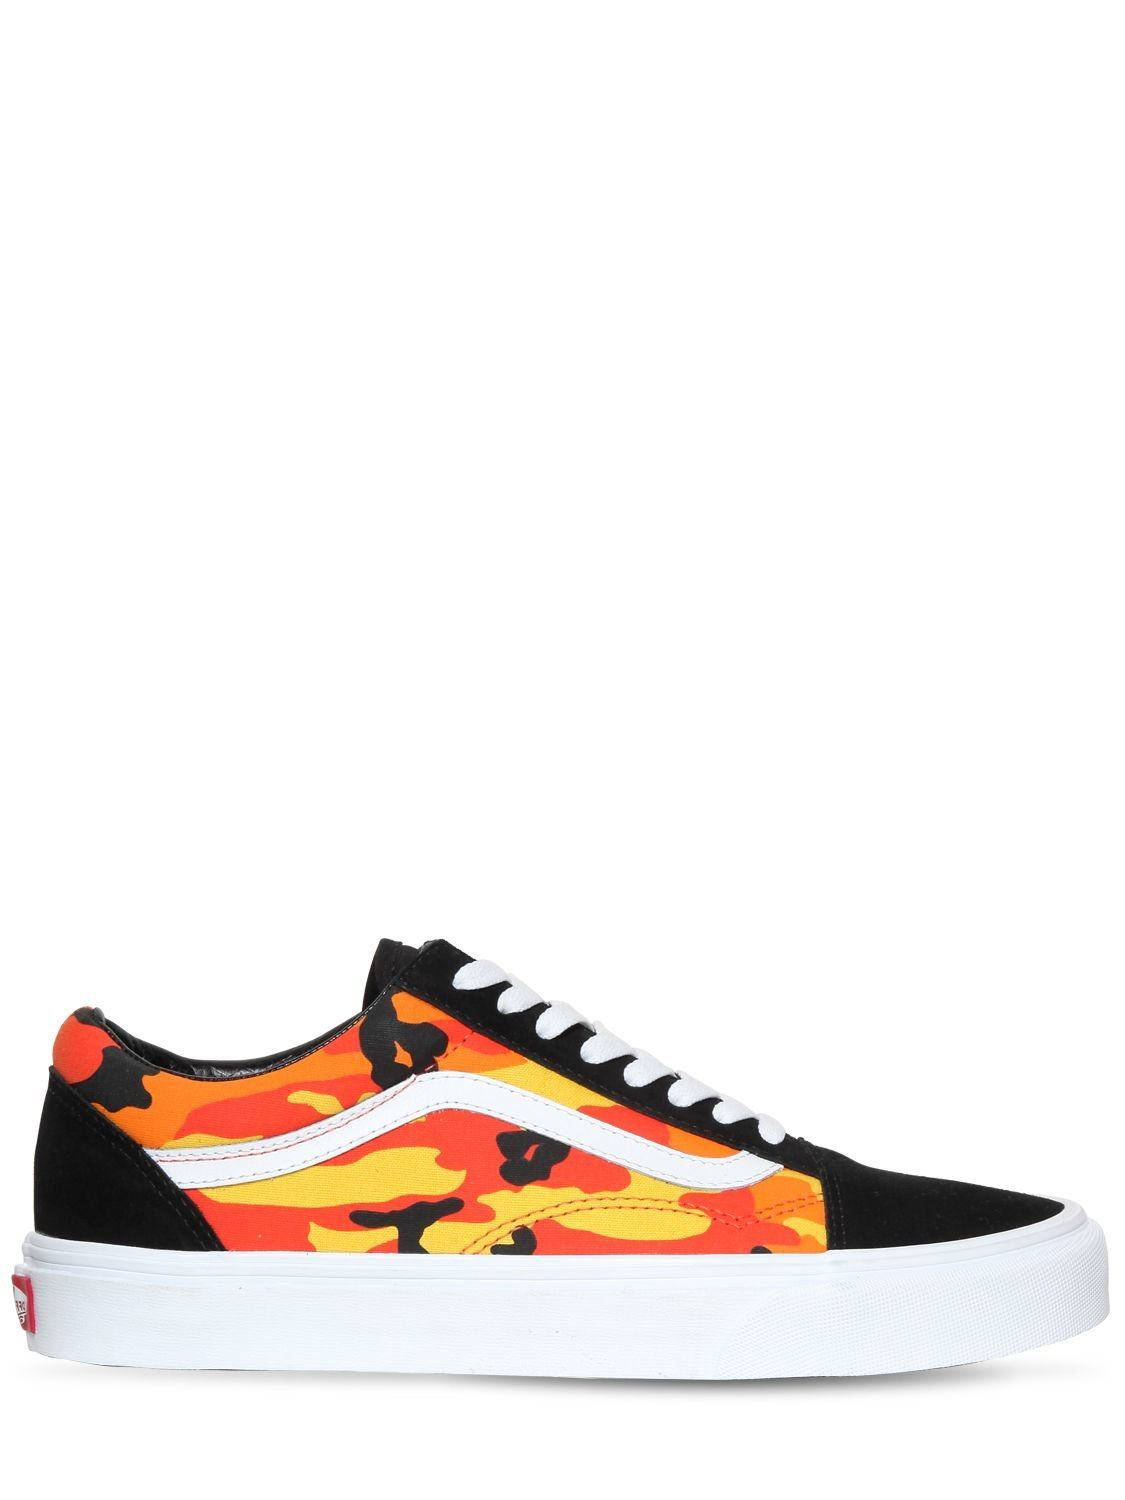 Old Skool Pop Camo Sneakers In Multicolor With Images Vans Old